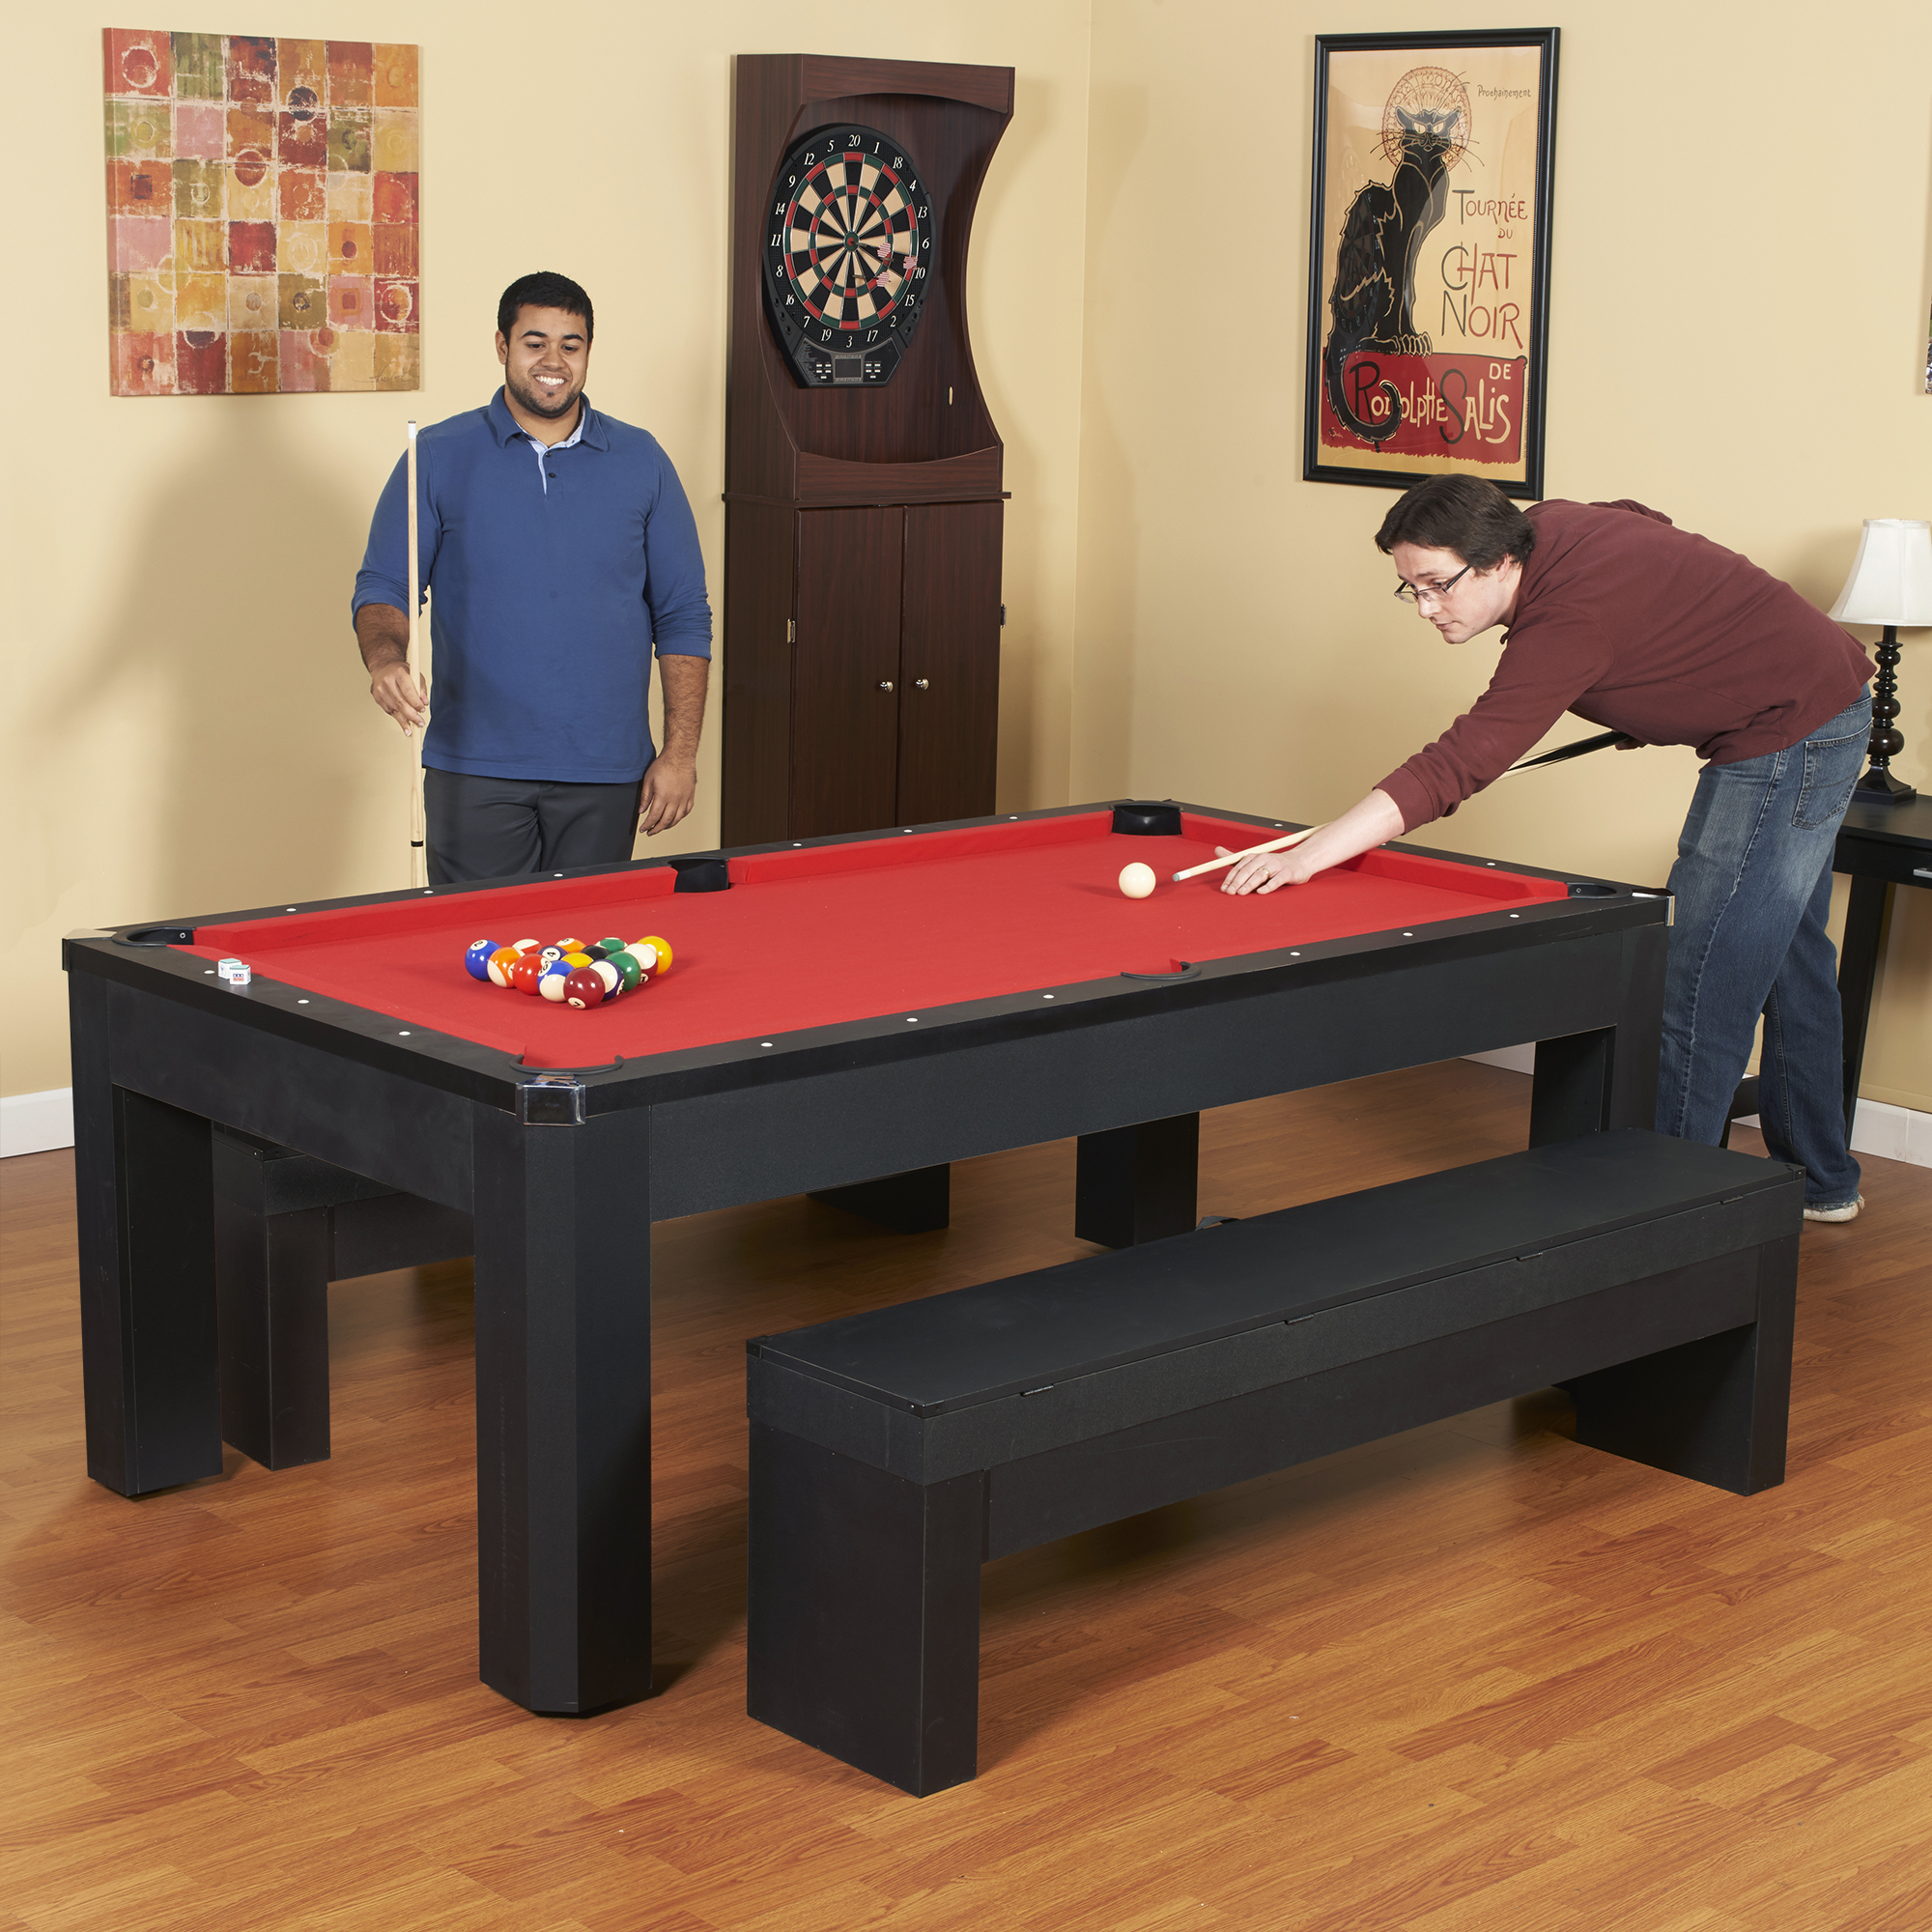 Hathaway Park Avenue 7 Foot Pool Table Tennis Combination With Dining Top,  Two Storage Benches, Free Accessories